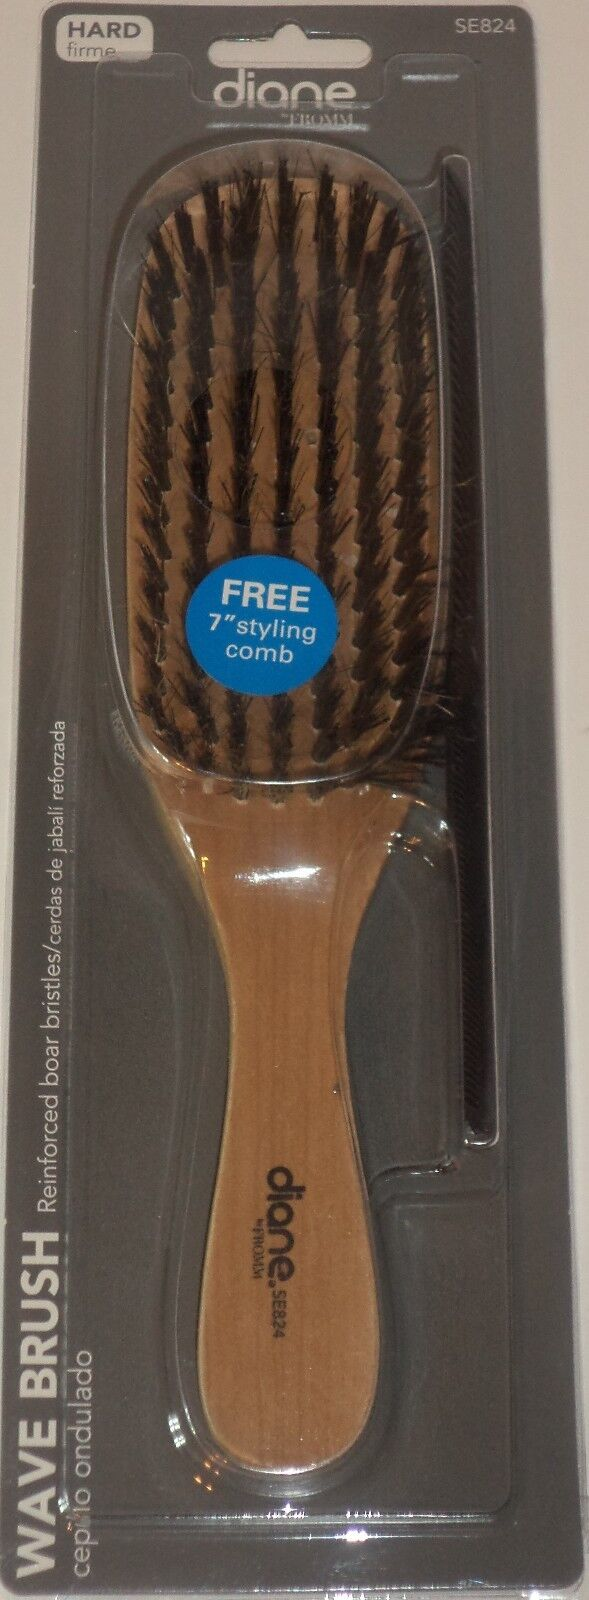 """Diane Soft and Hard Wave Brush SE802 with 7"""" Styling Comb"""